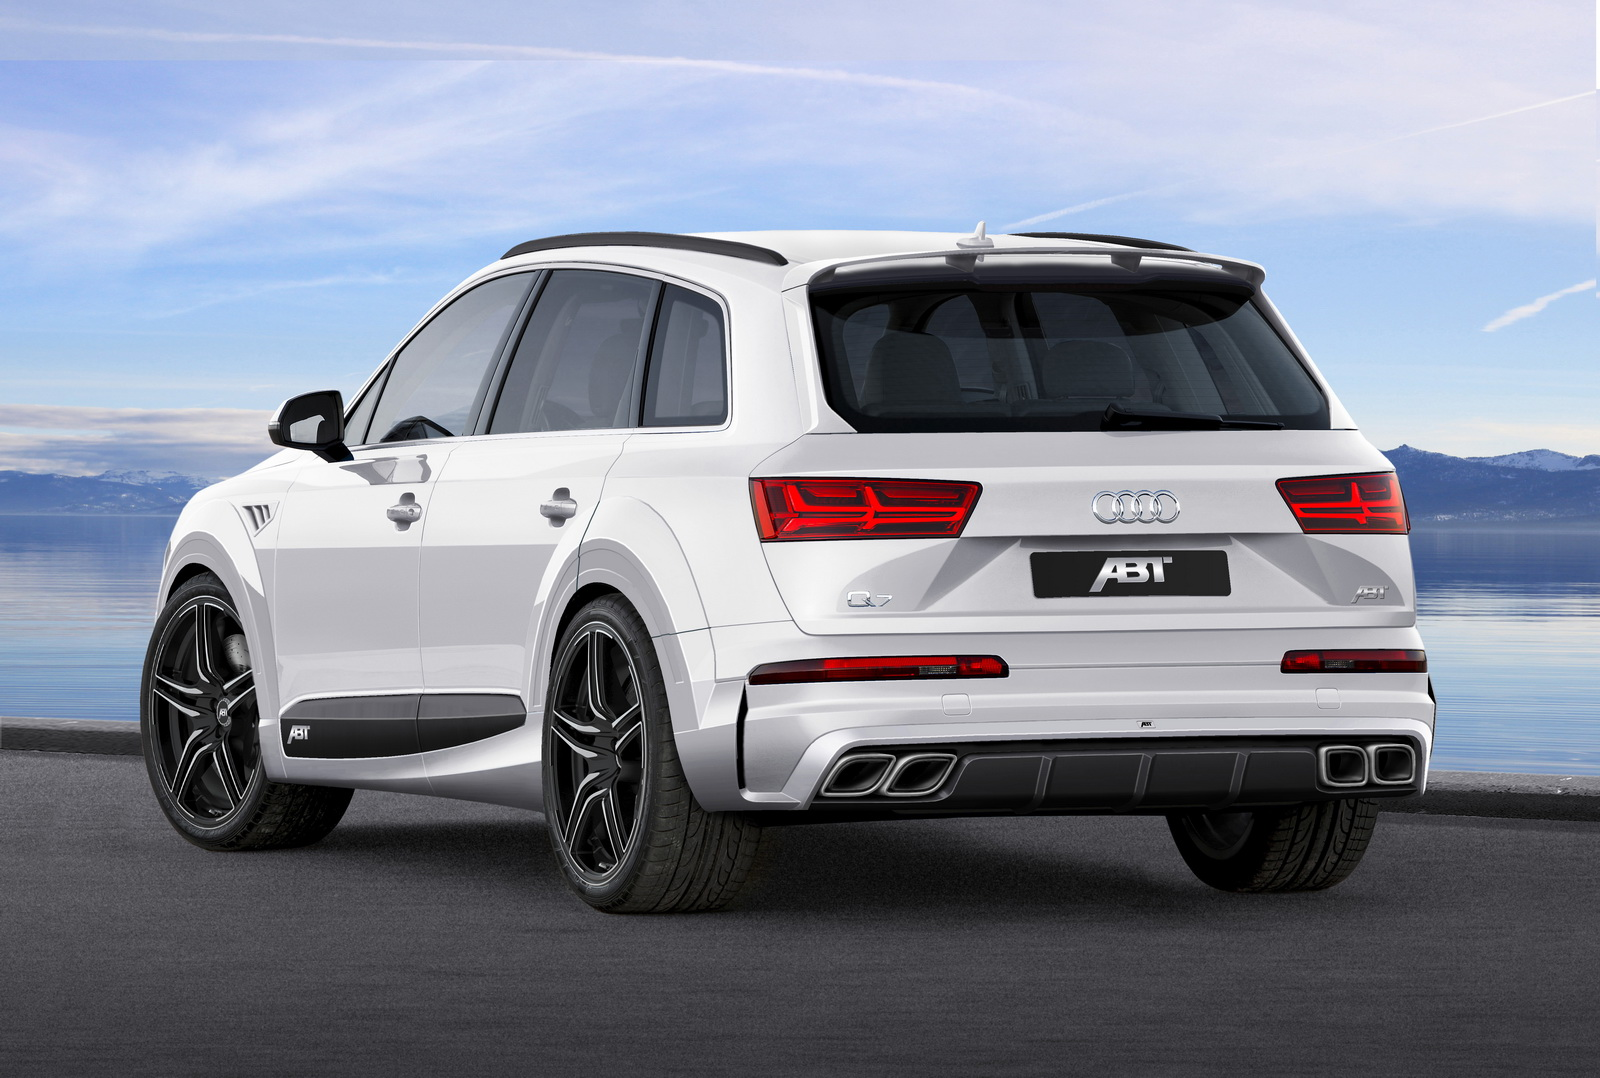 abt dresses audi q7 in sportier clothes calls it the qs7 carscoops. Black Bedroom Furniture Sets. Home Design Ideas